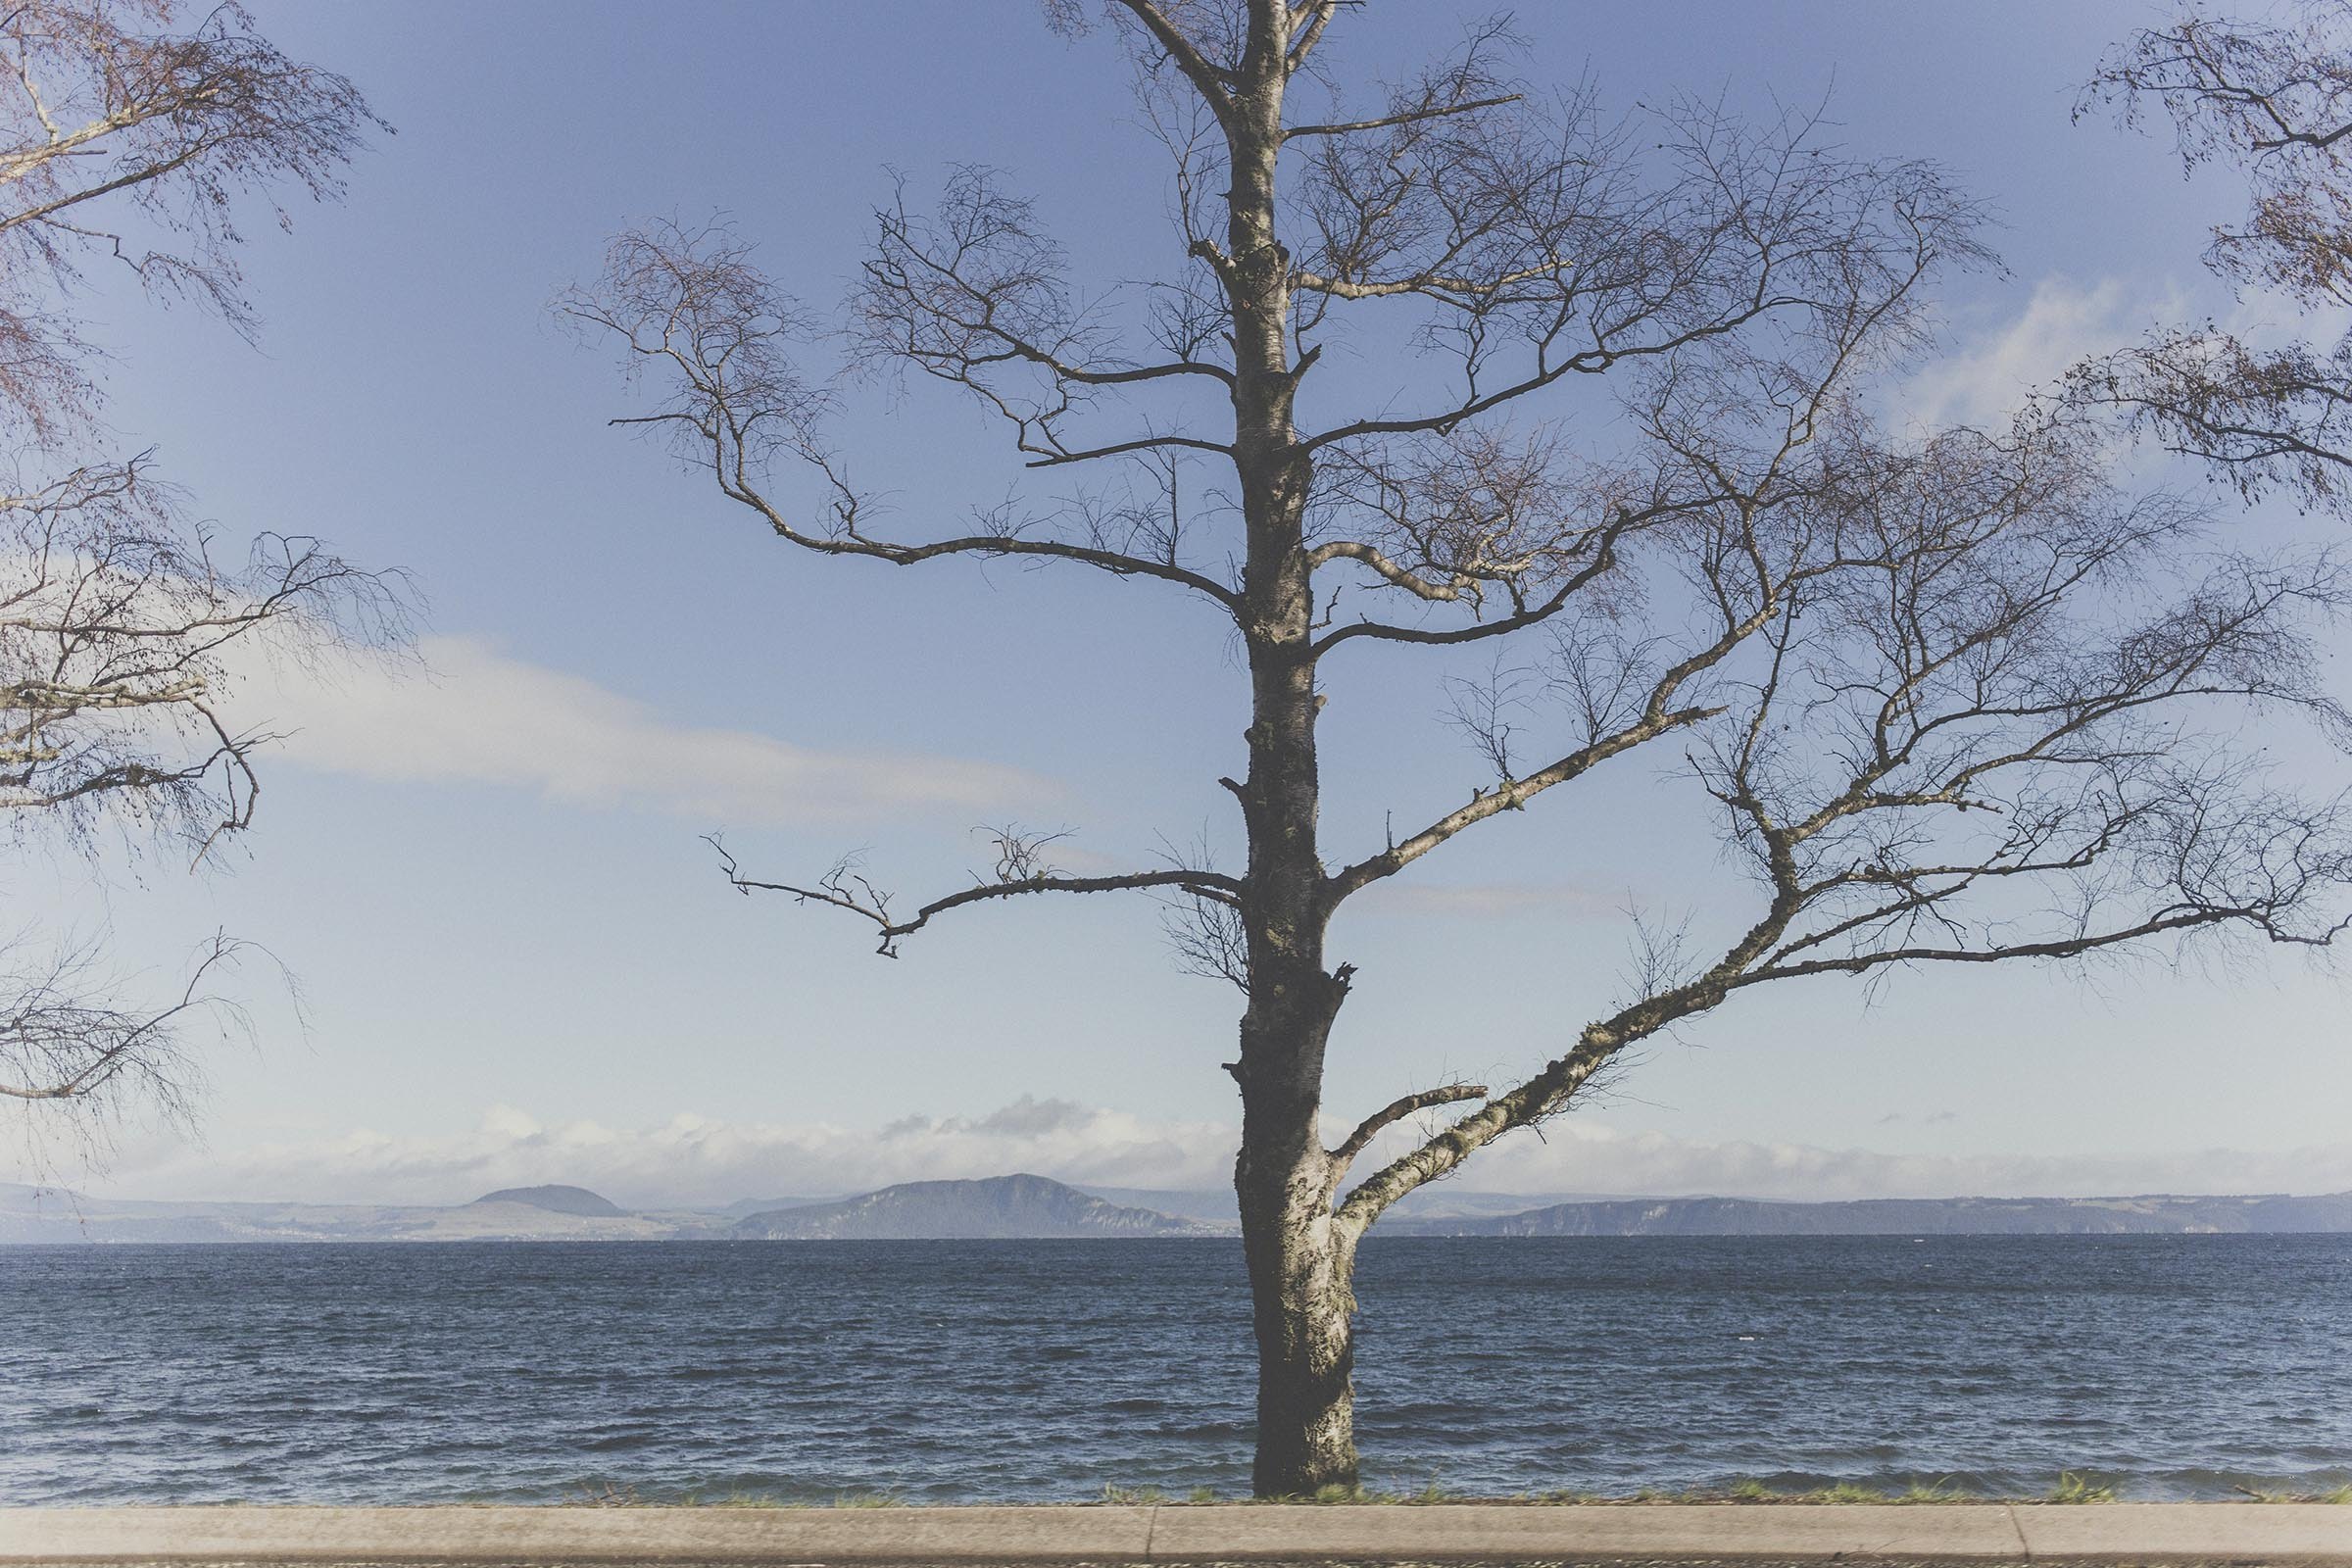 Landscape, road trip photo of Lake Taupo, North Island of New Zealand. Image by Jenny Siaosi.